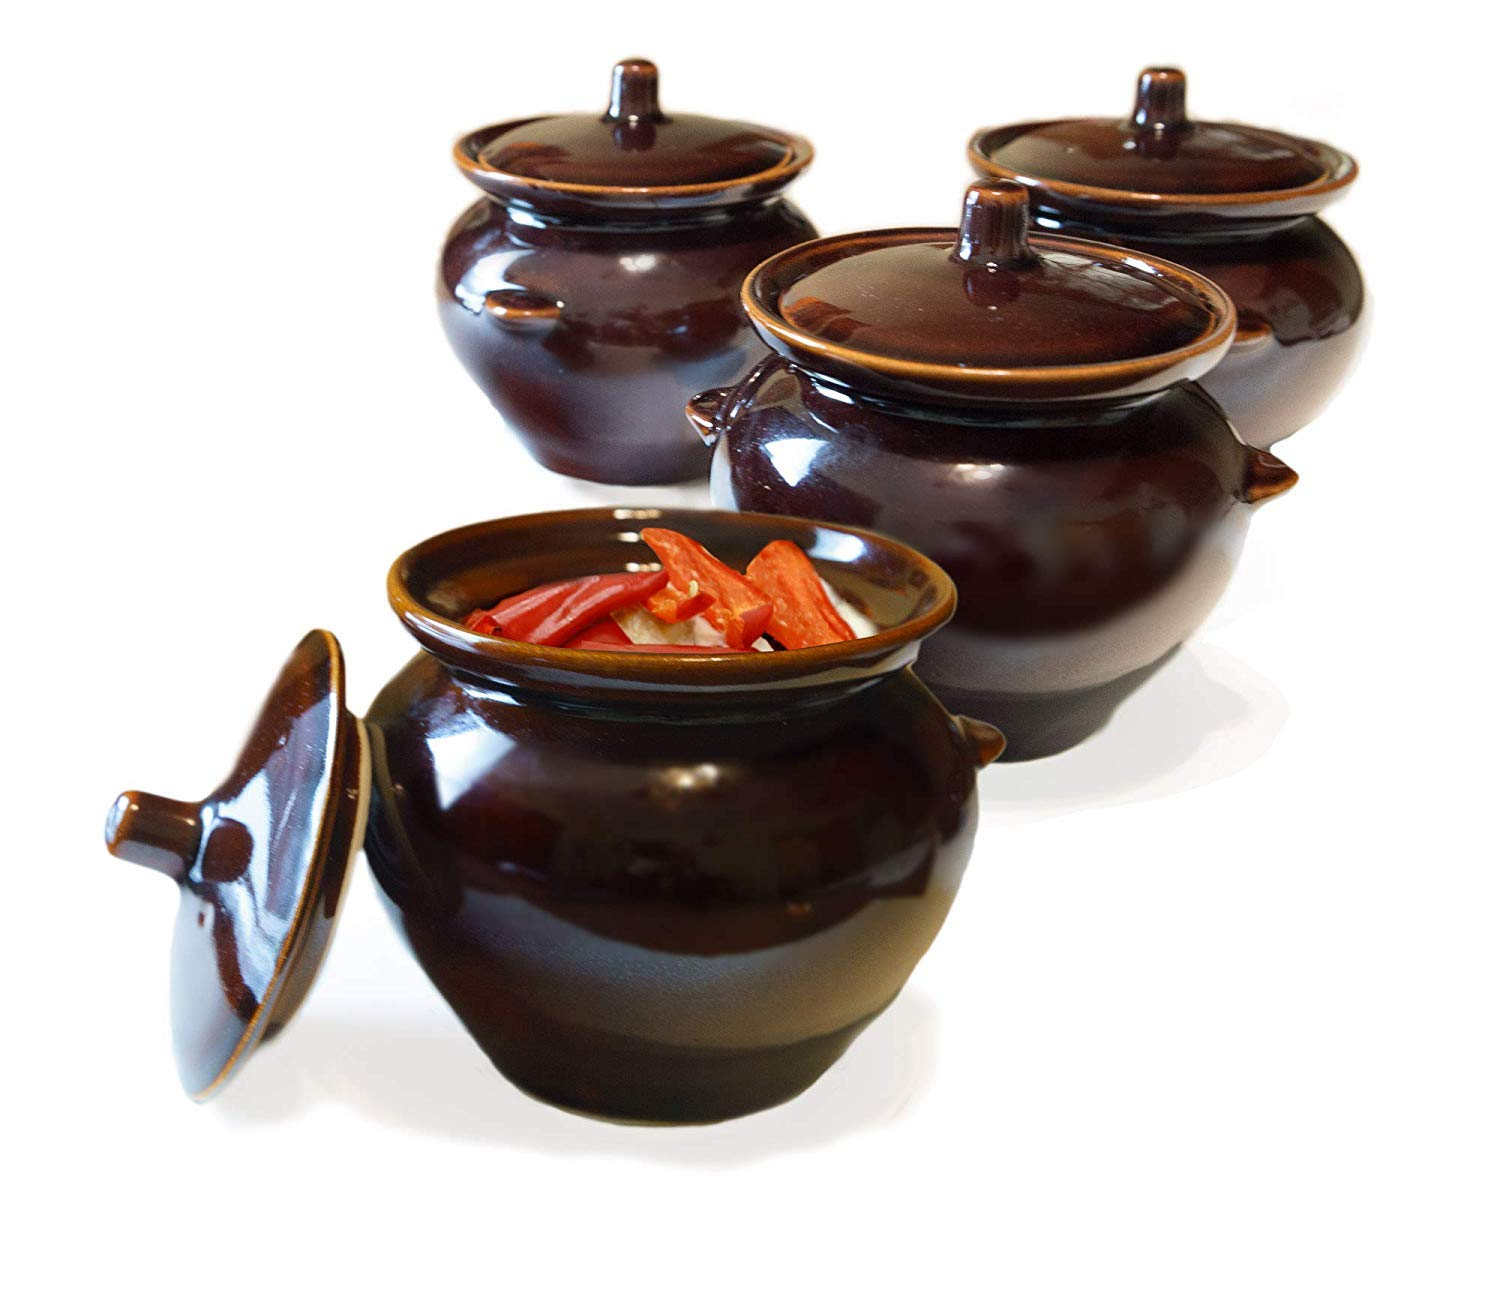 Bake & Serve 15 oz Ceramic Ramekin Bowl with Lid - set оf 4 - Country Kitchen Style Soup Stew Glazed Clay Pot Crocks - Oven-, Microwave- and Dishwasher- safe